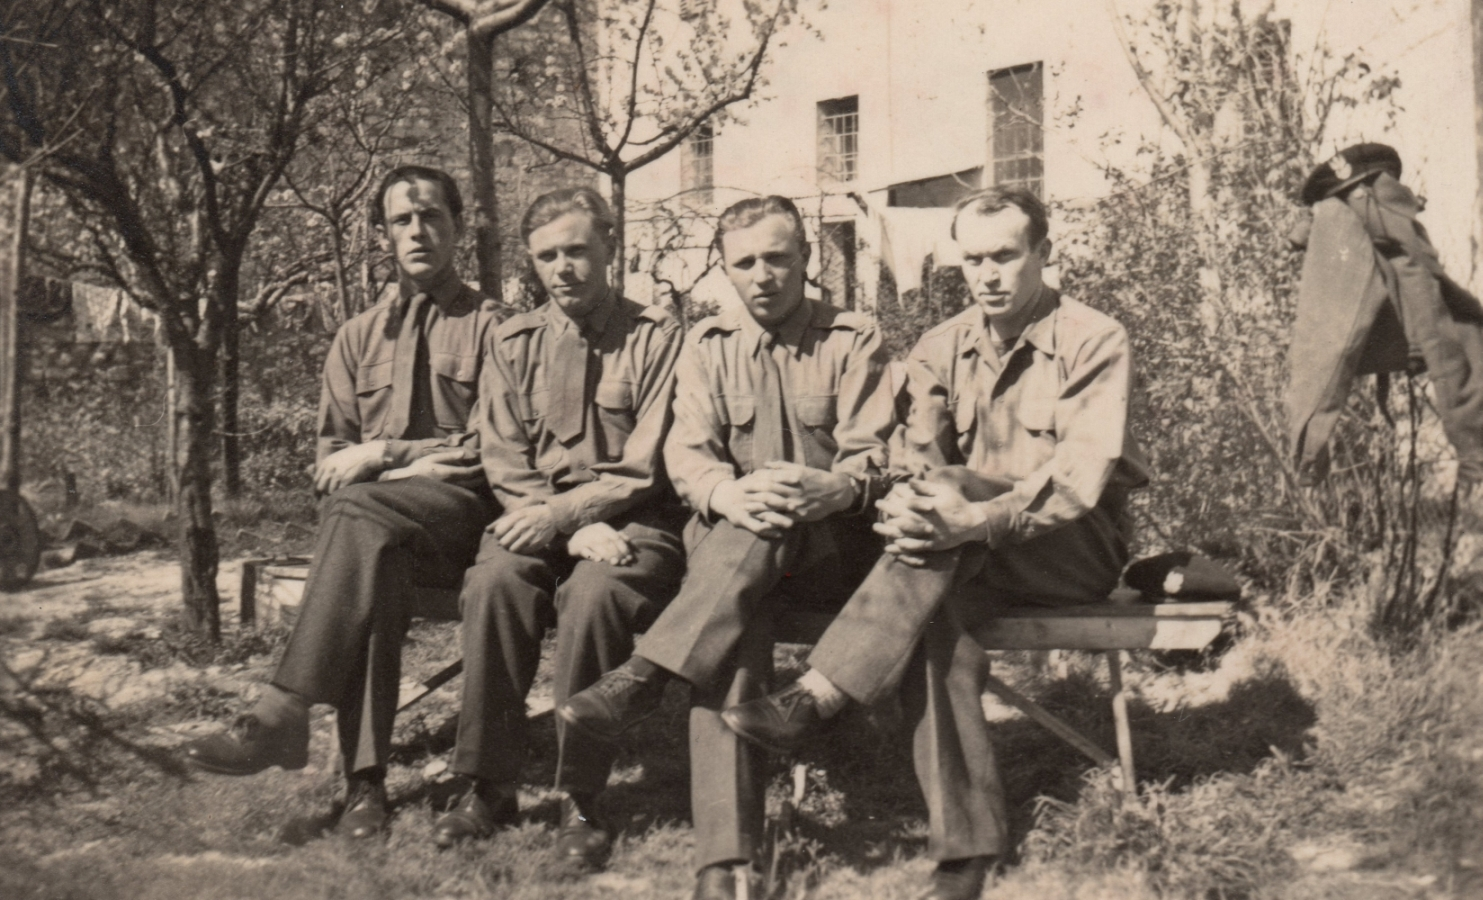 Four soldiers  sitting on a bench under trees in front of a house, in shirtsleeves, no caps, one cap next to the men on the bench, another  placed on a jacket hung over a wire fence.